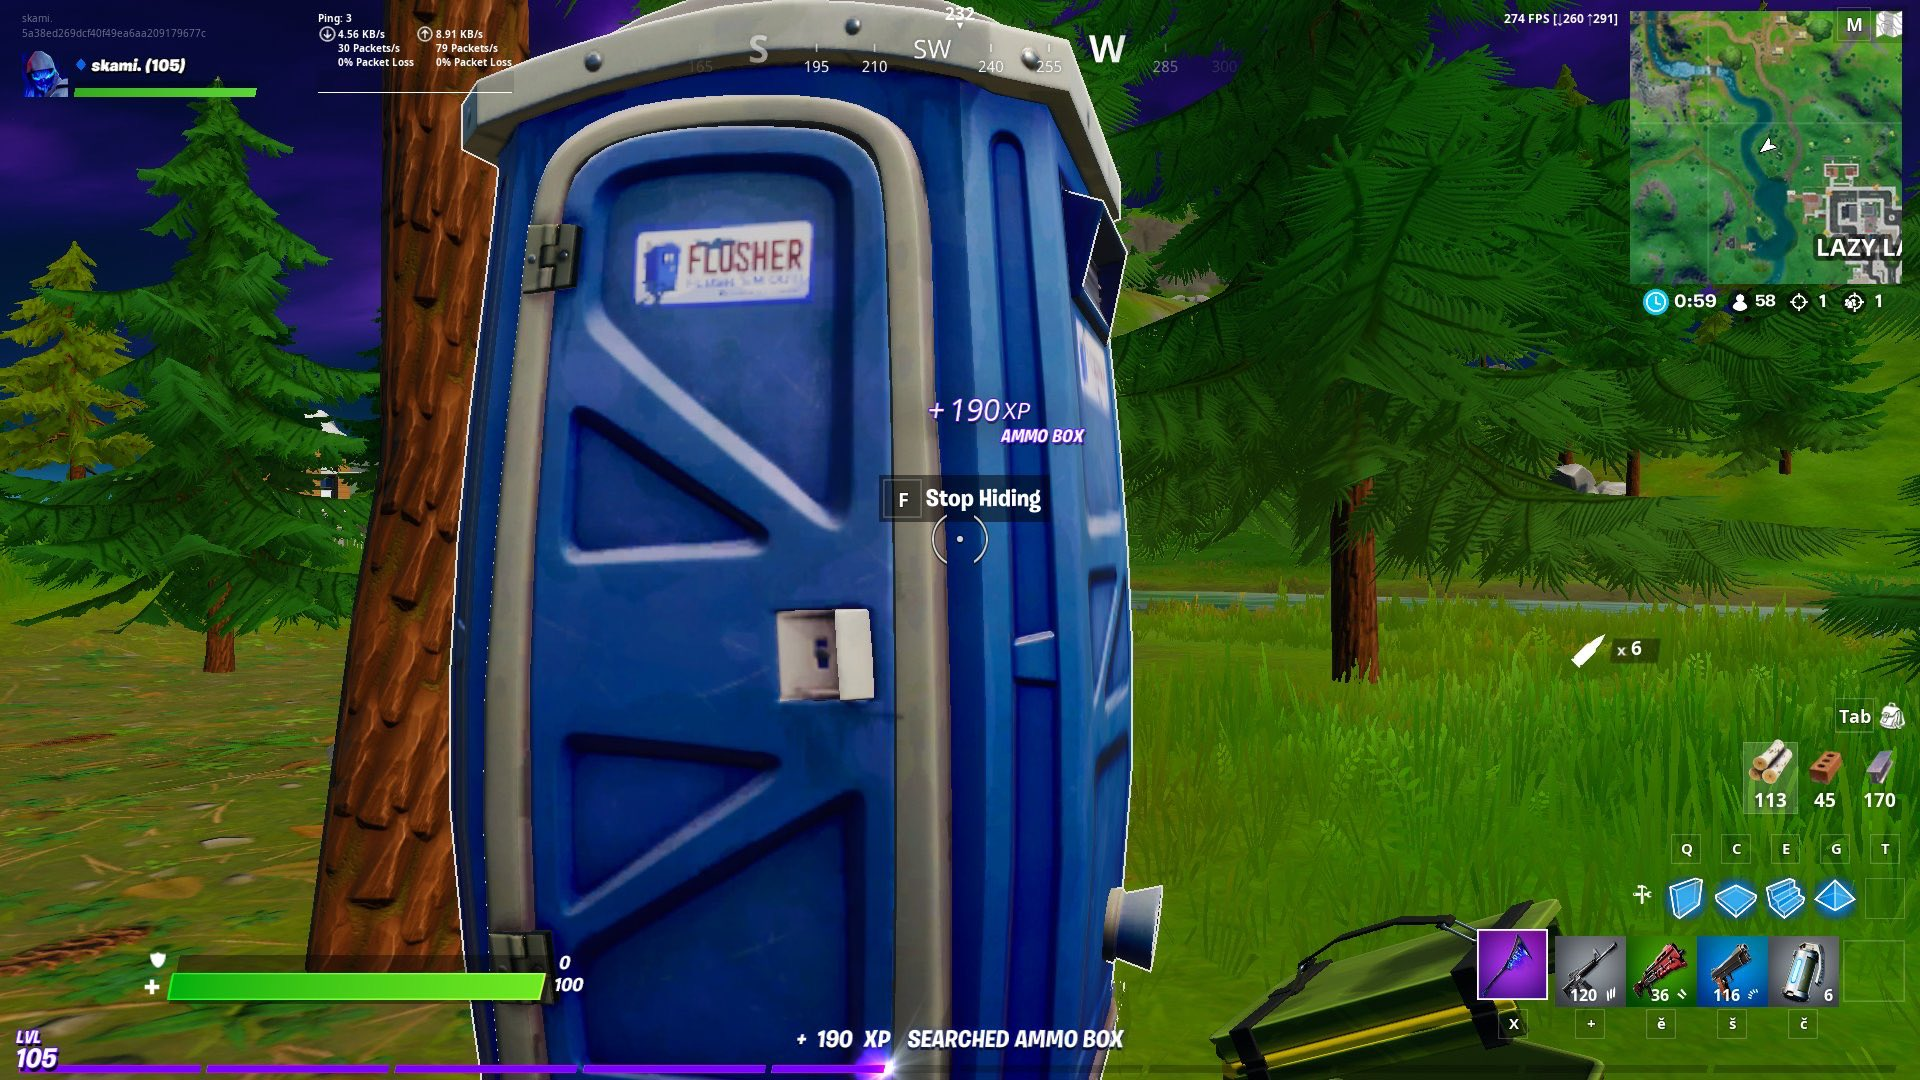 Players can now hide in Fortnite's portable toilets